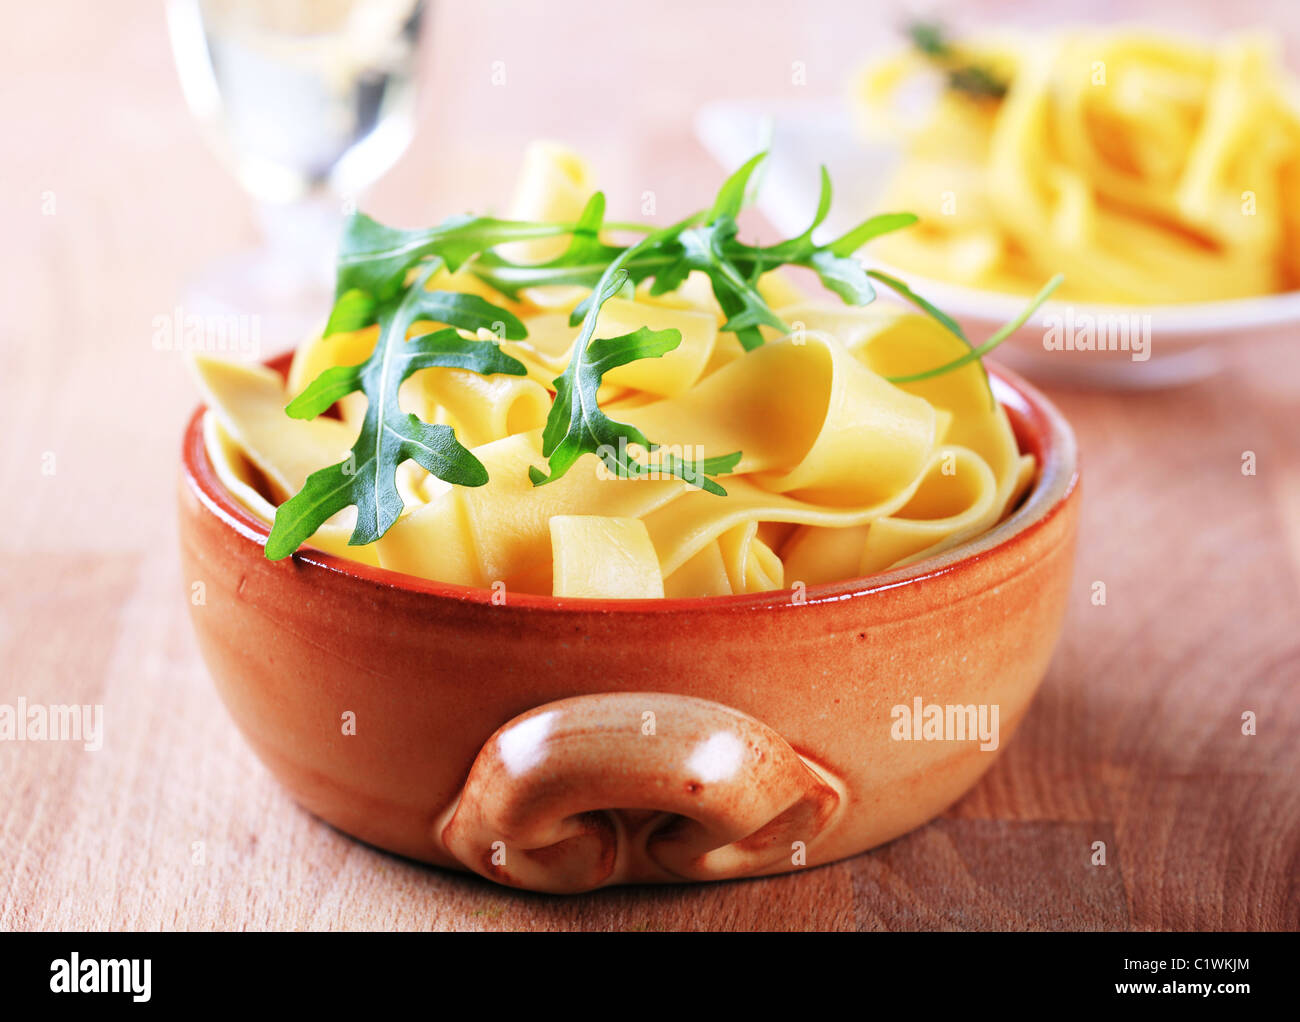 Cooked ribbon pasta in a ceramic pot - Stock Image